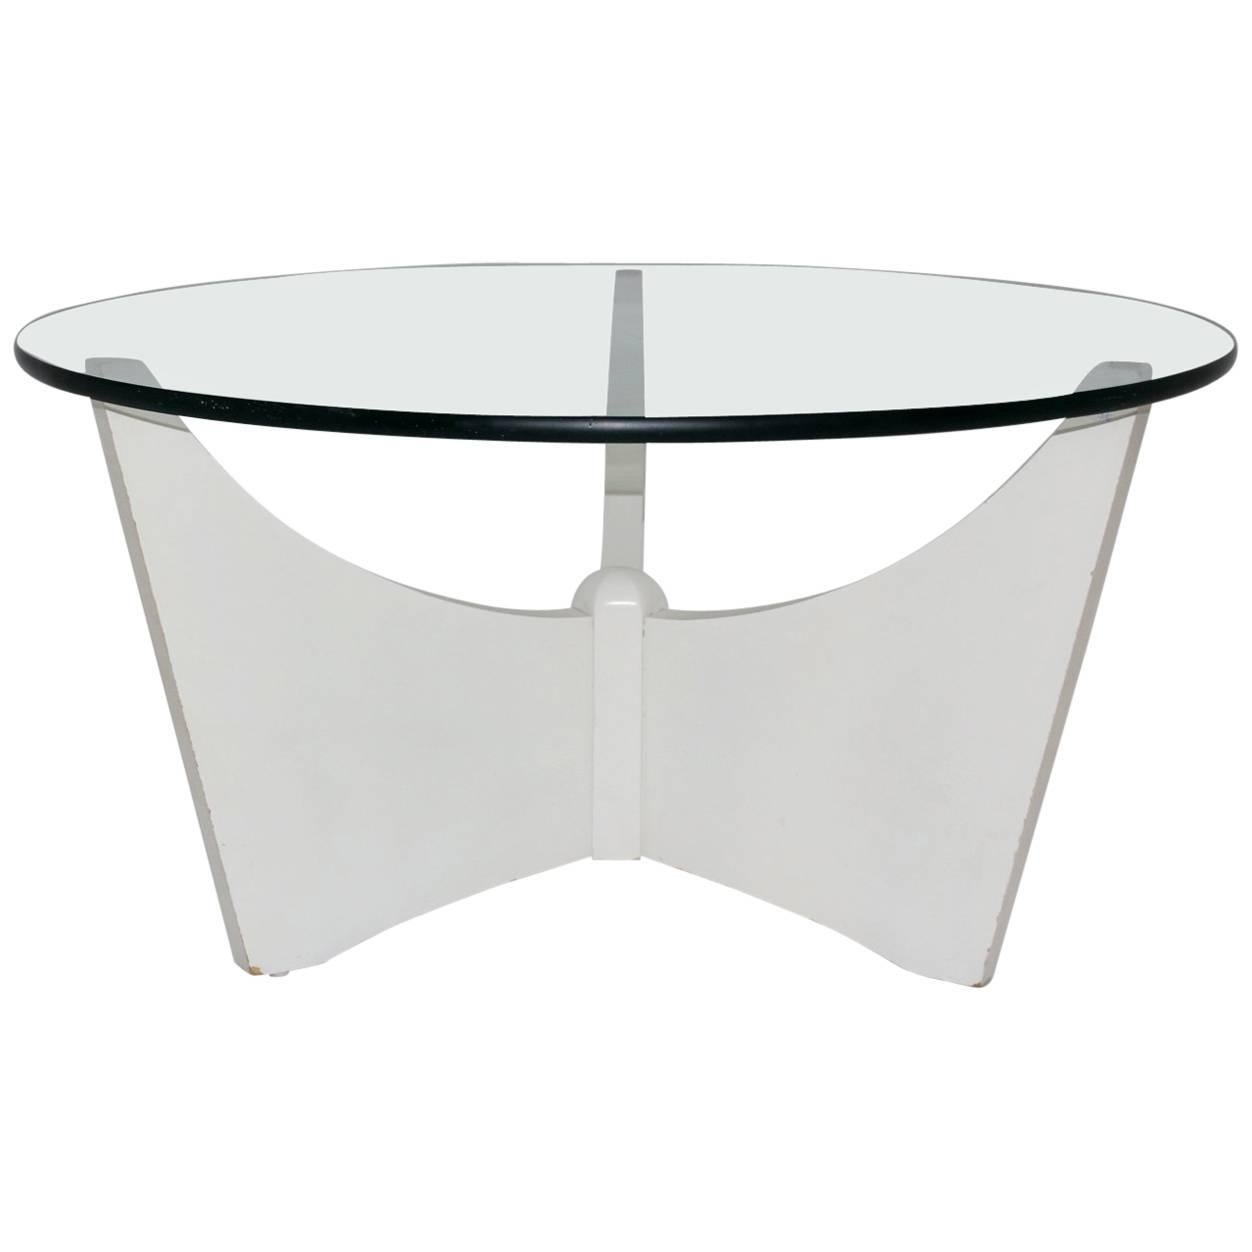 Ordinaire White Coffee Table With Glass Top, Circa 1970